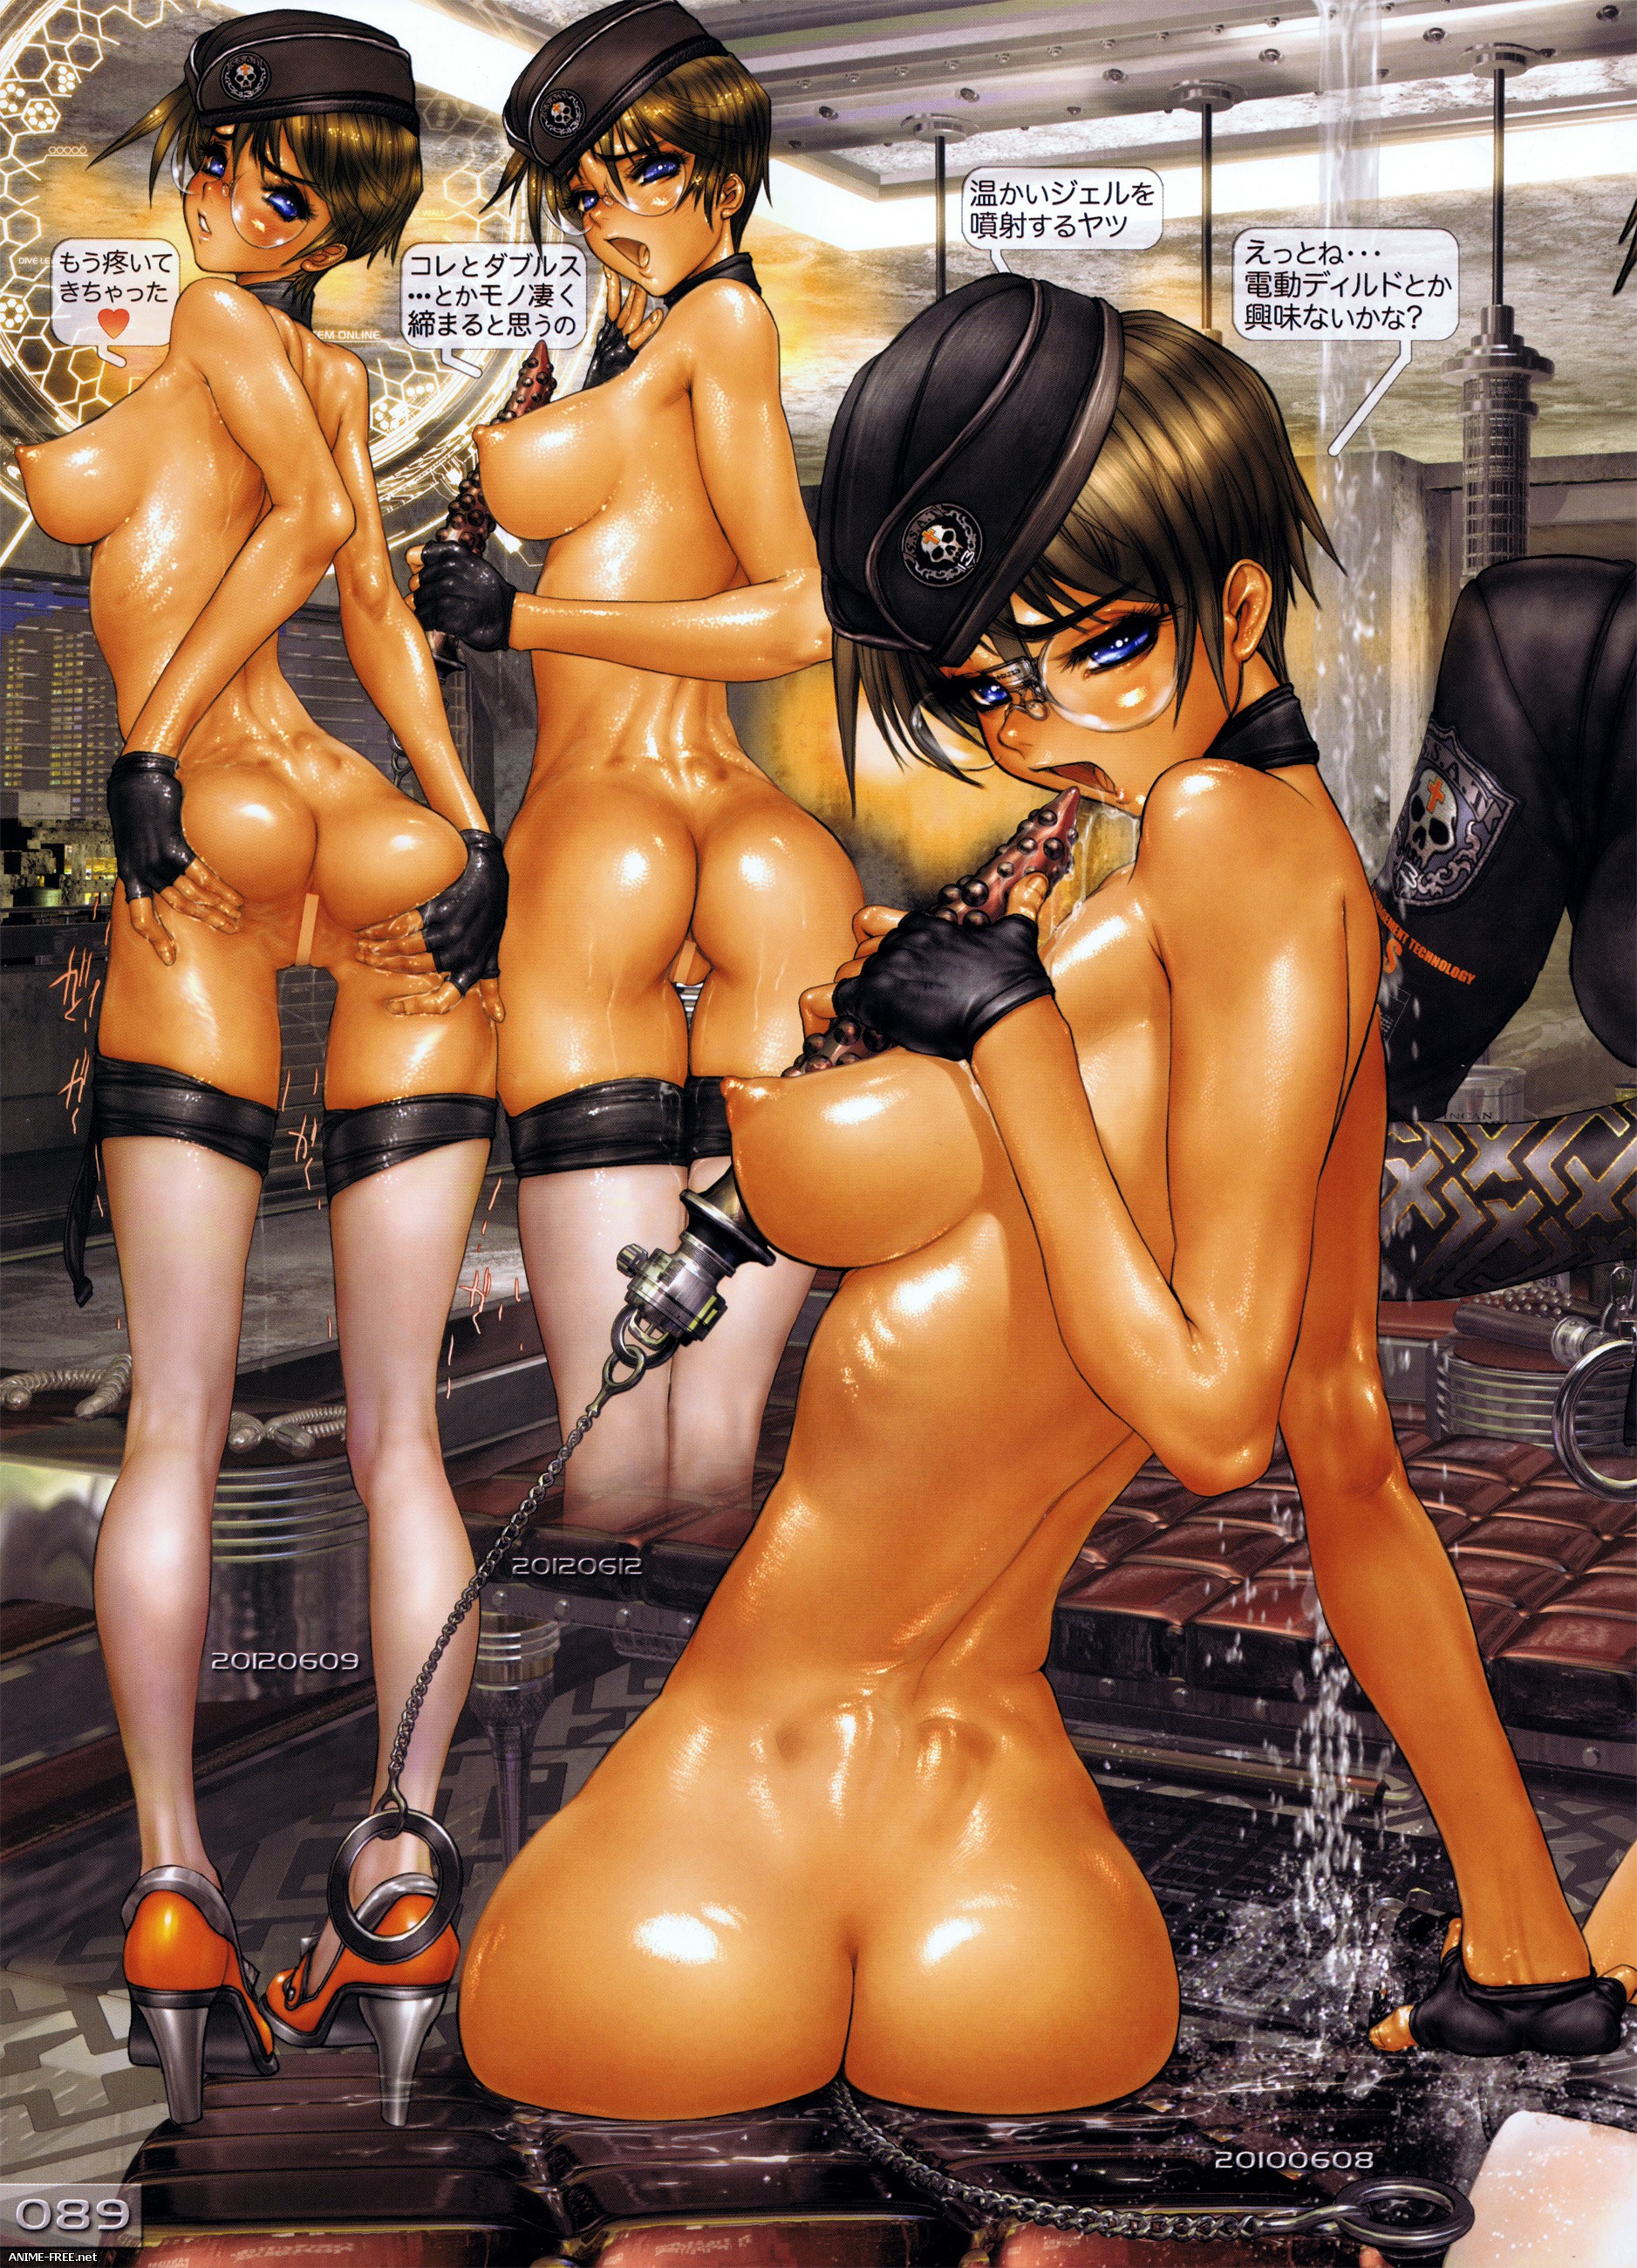 Masamune Shirow Artbooks [Cen] [JPG] Hentai ART